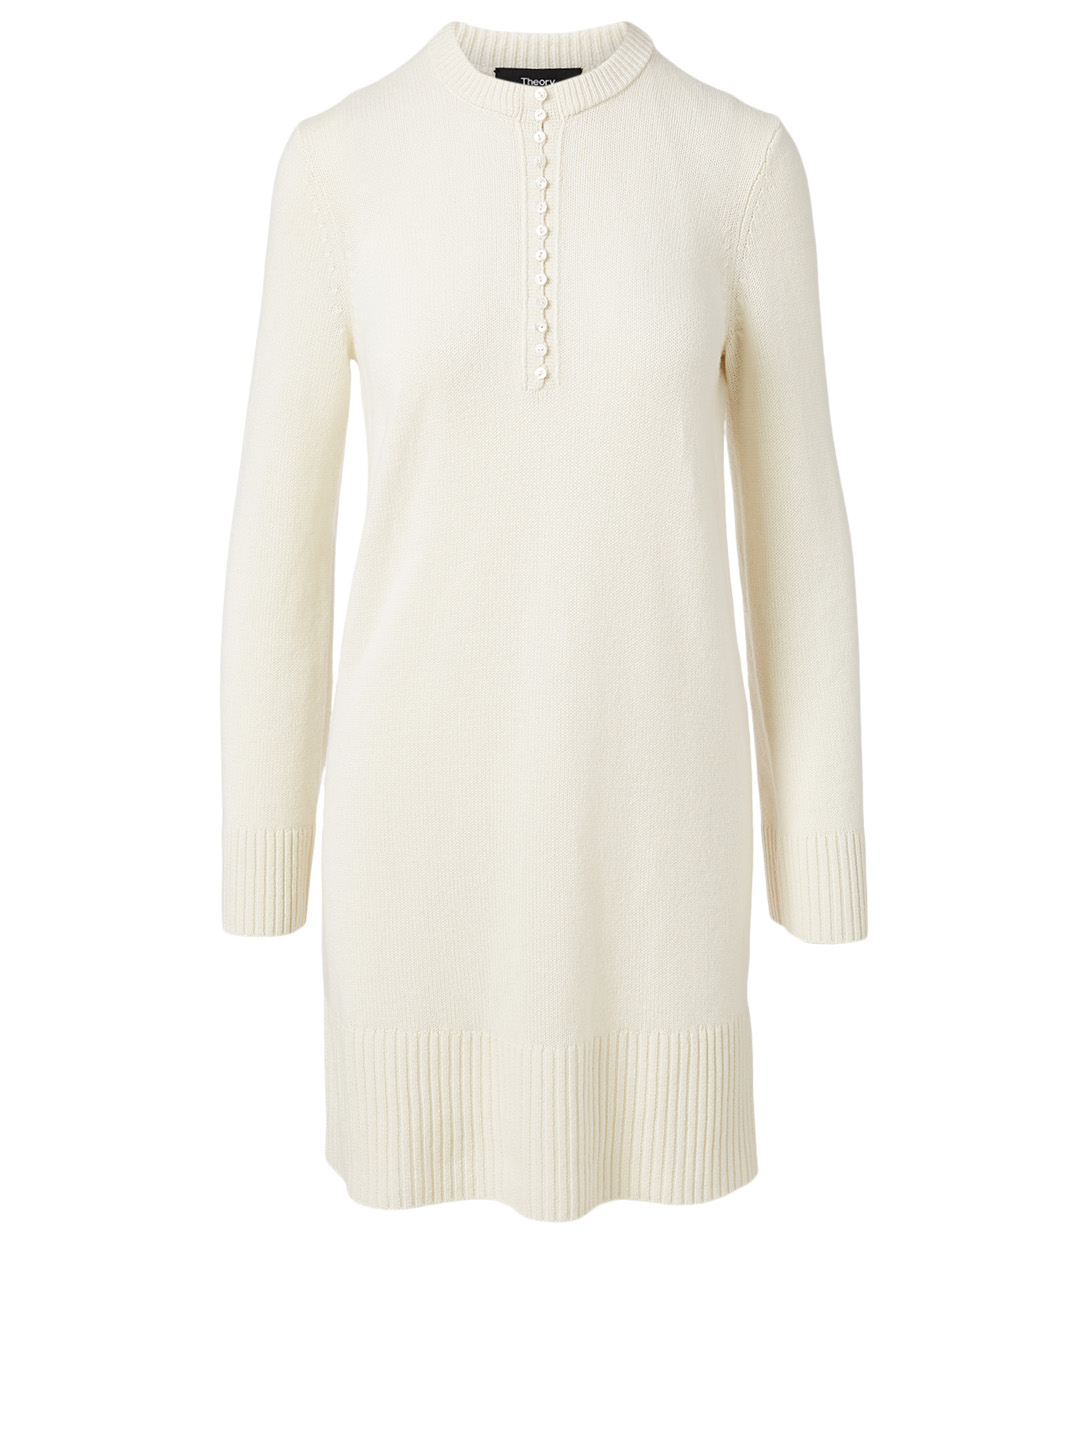 THEORY Cashmere Long-Sleeve Henley Dress Women's White